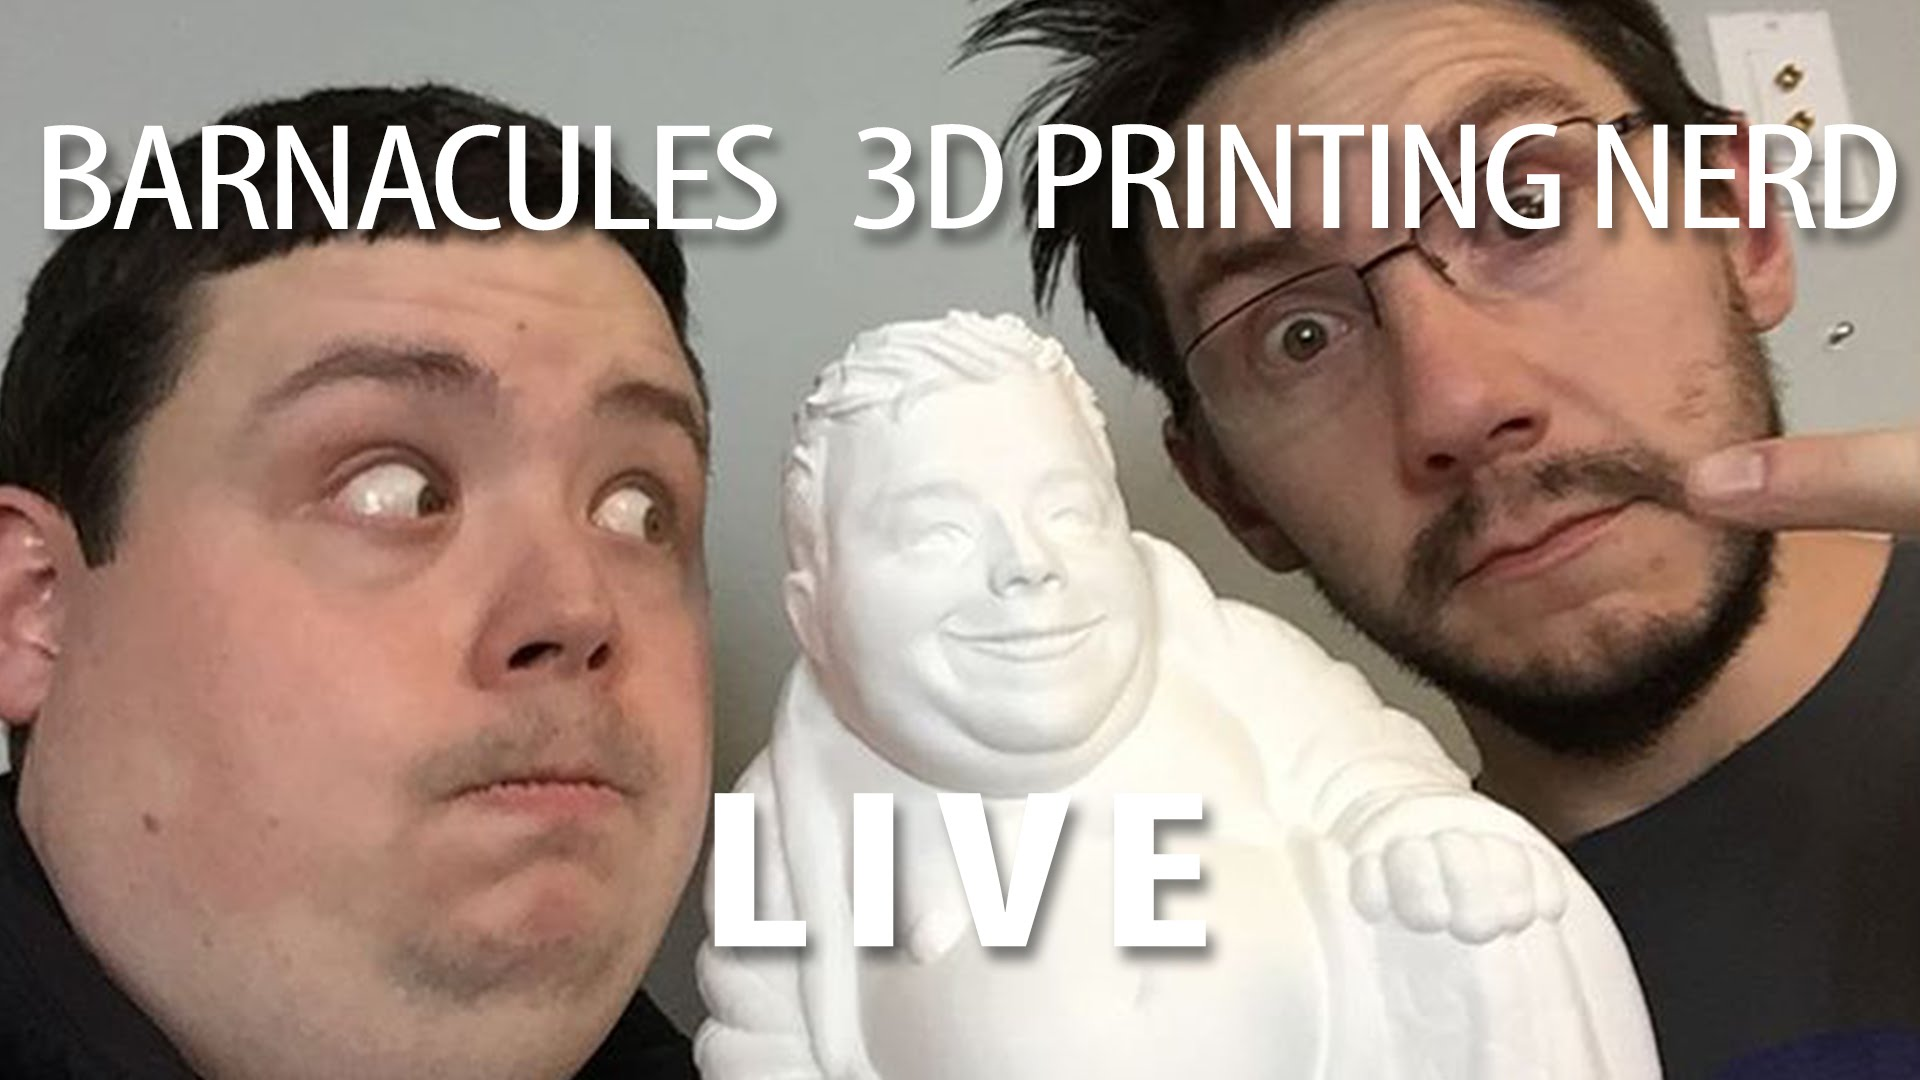 LIVE: Discussing 3D Printing with Barnacules Nerdgasm